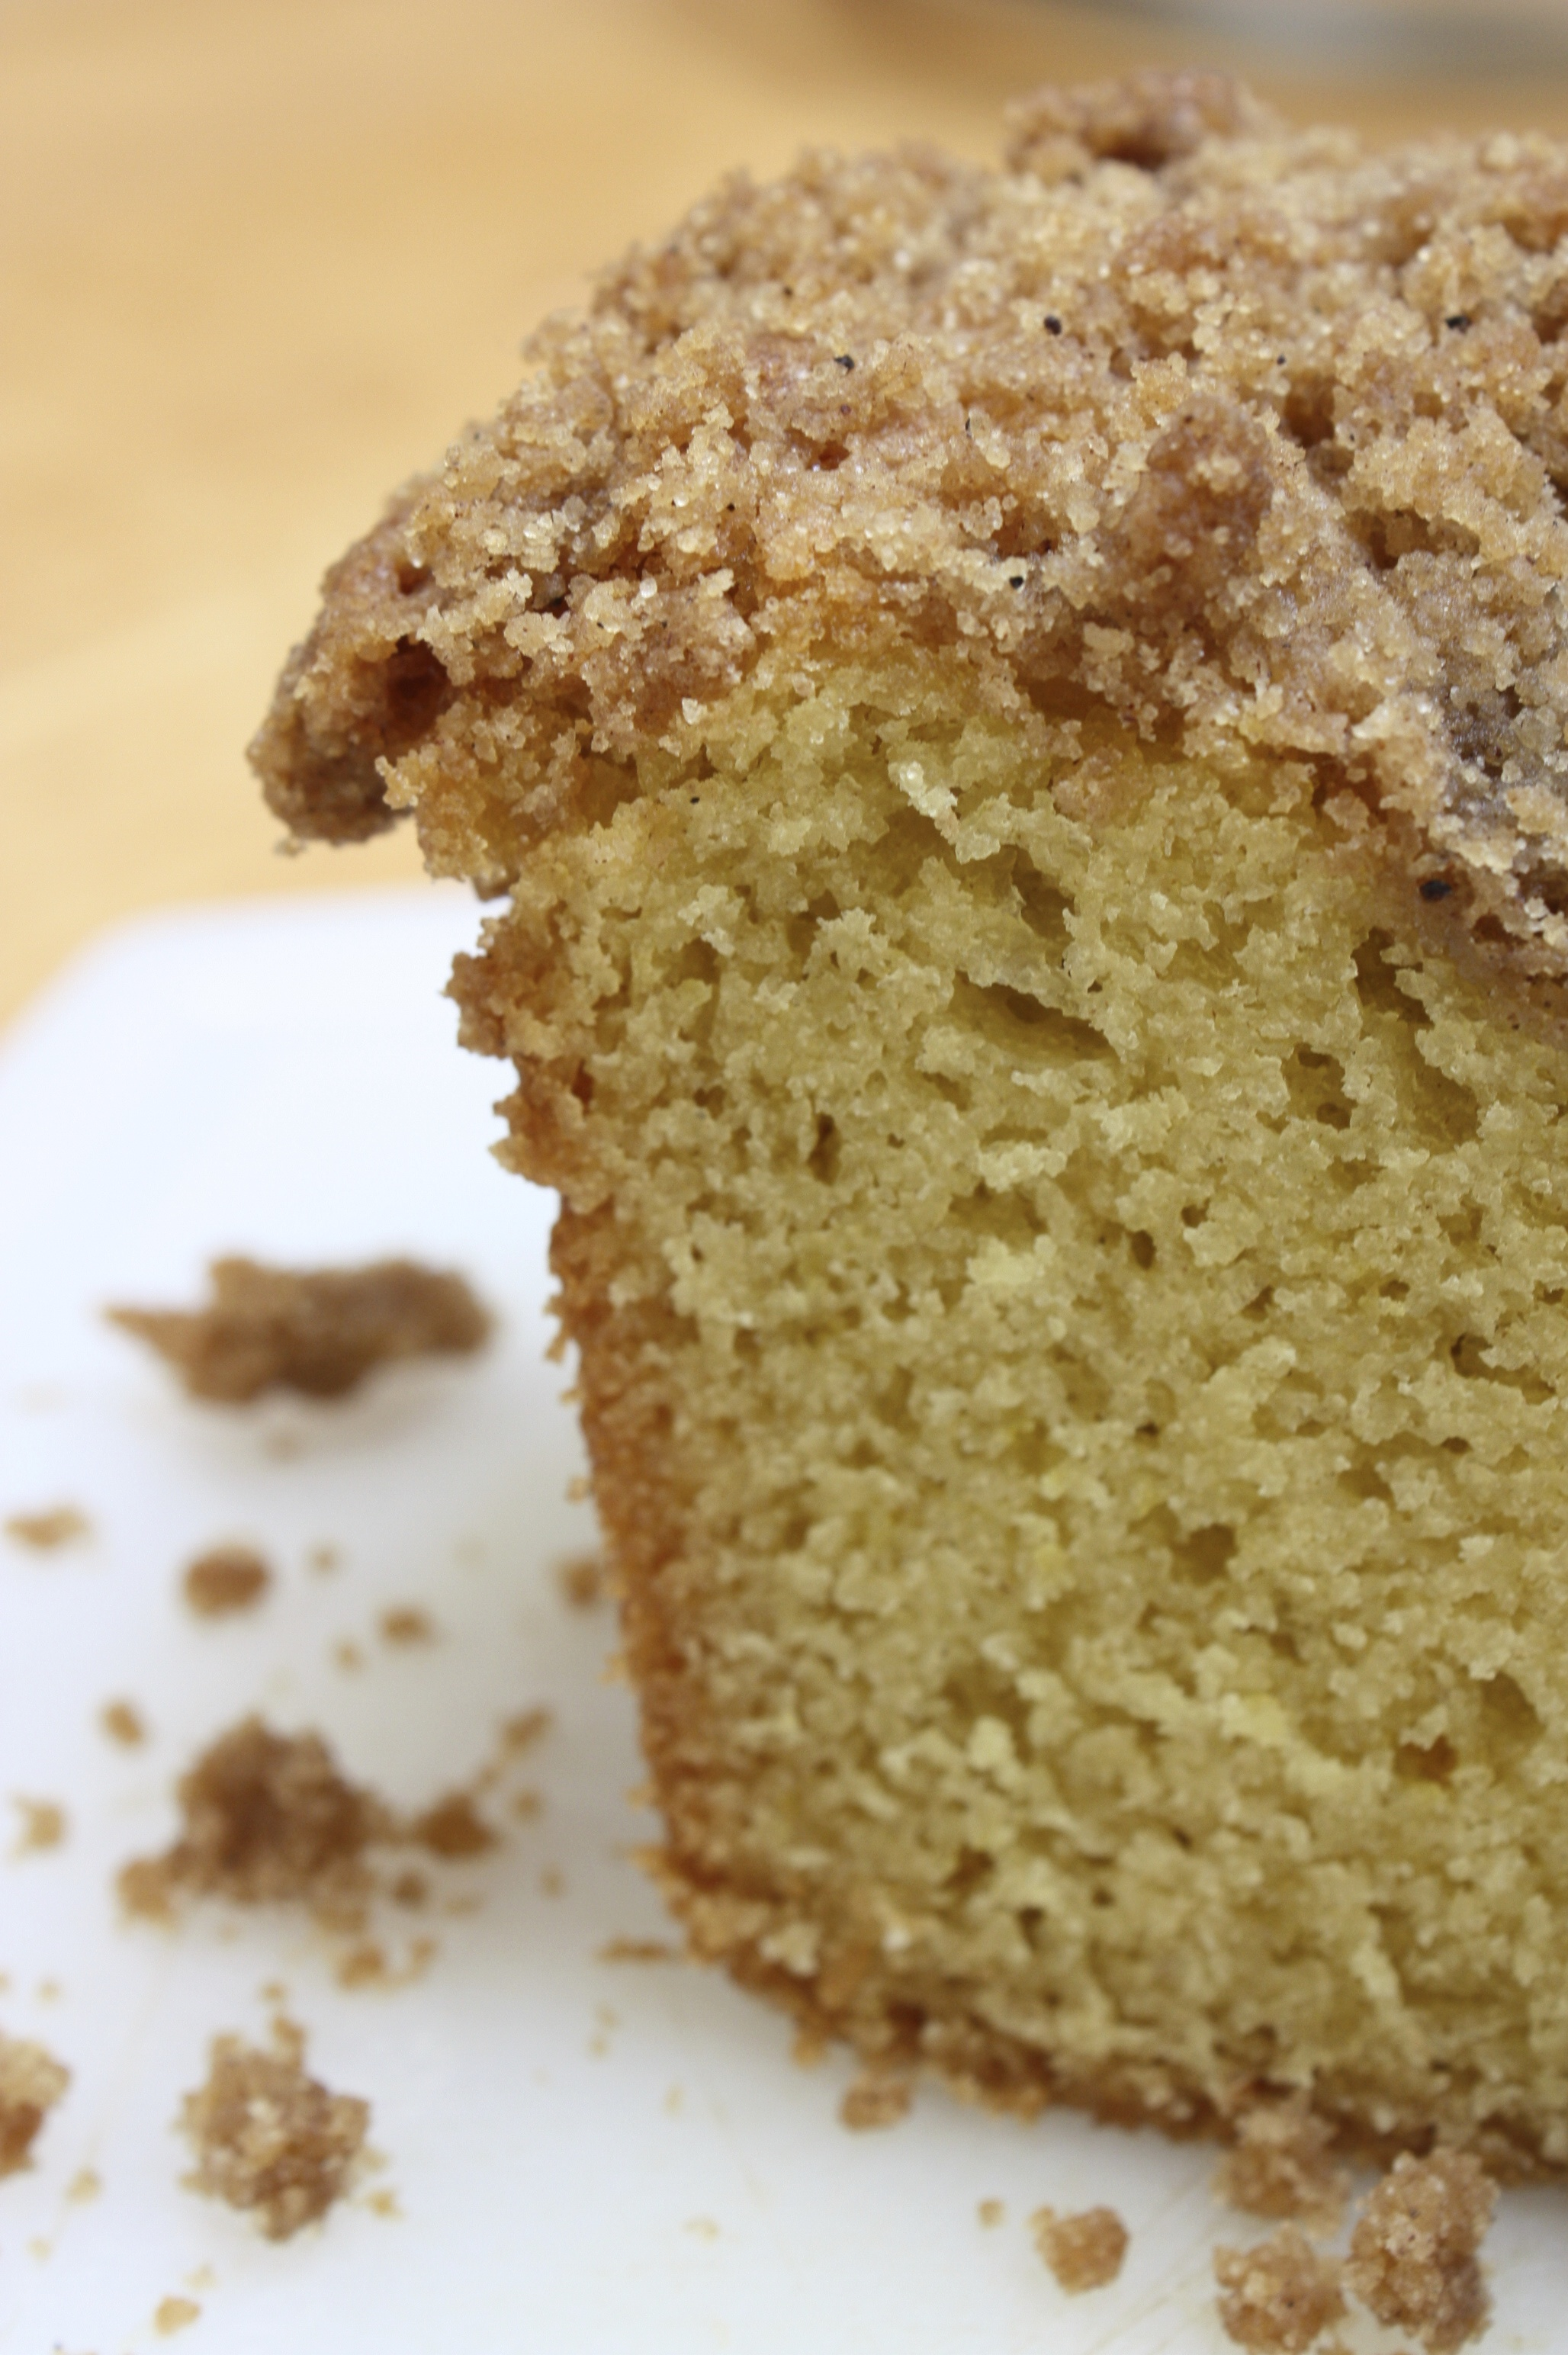 Lemon Streusel | friendshipbreadkitchen.com